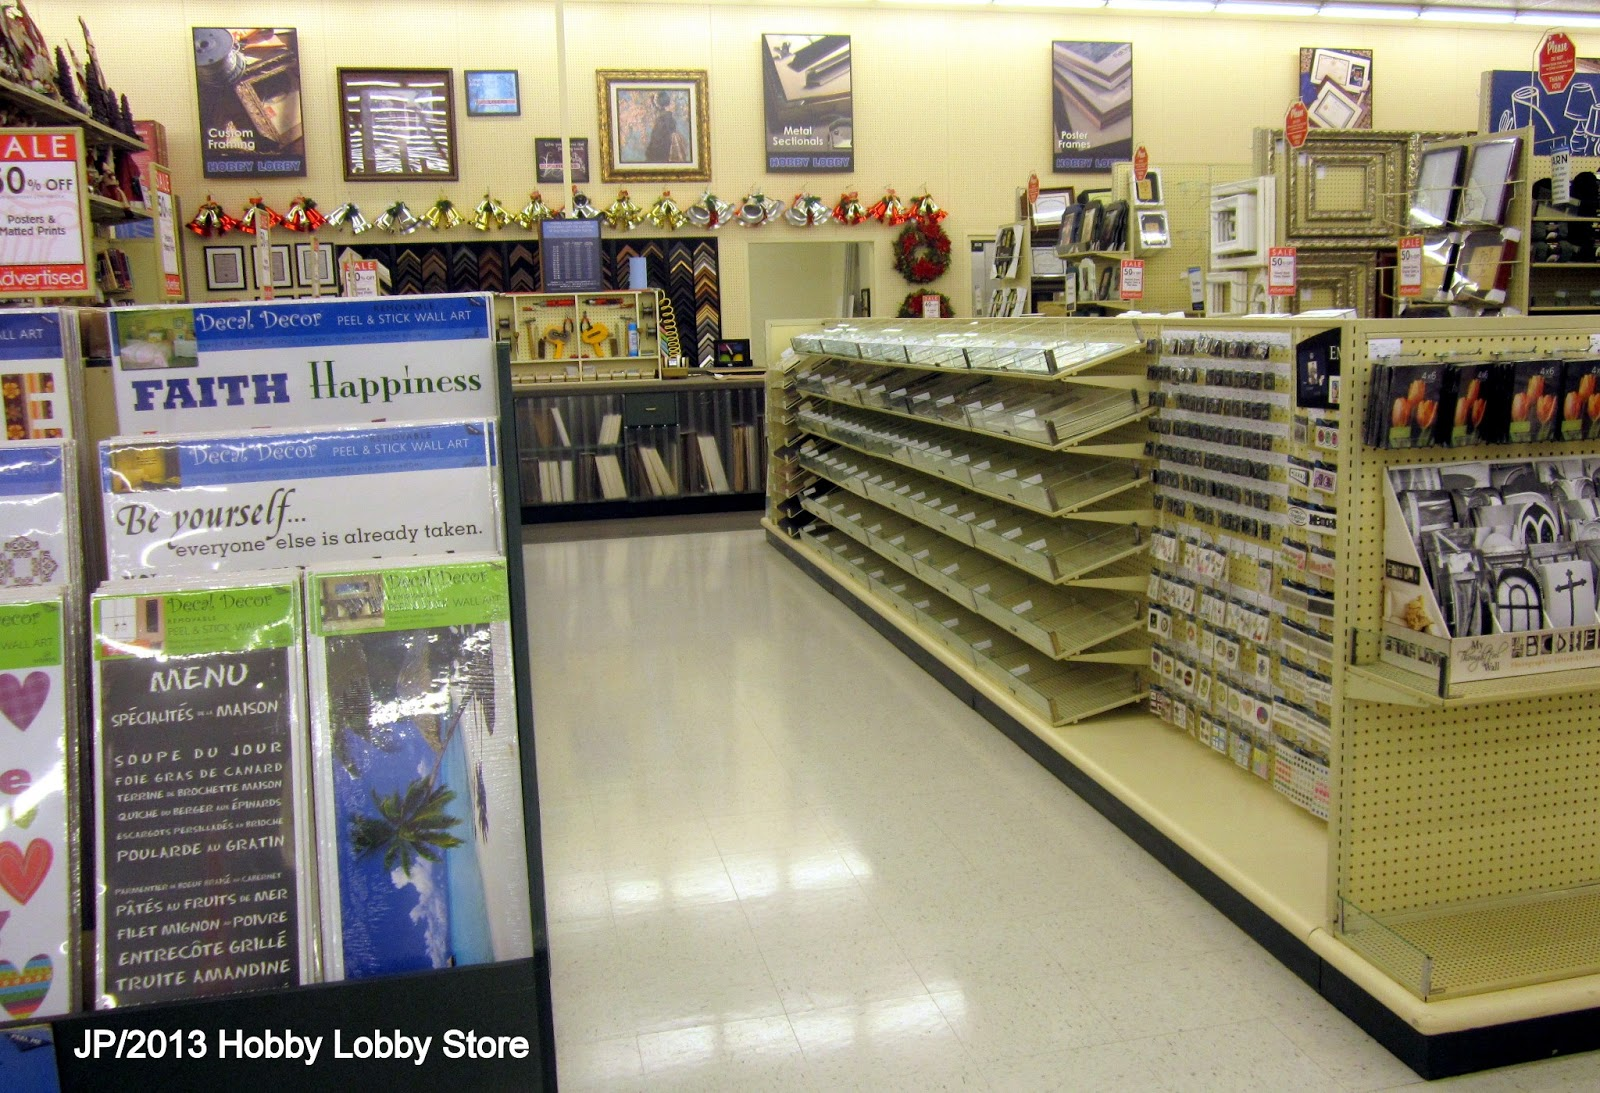 HOBBY LOBBY VALDOSTA GEORGIA, Hobby Lobby Crafts Collectible Furniture  Store Valdosta GA. Lowndes County